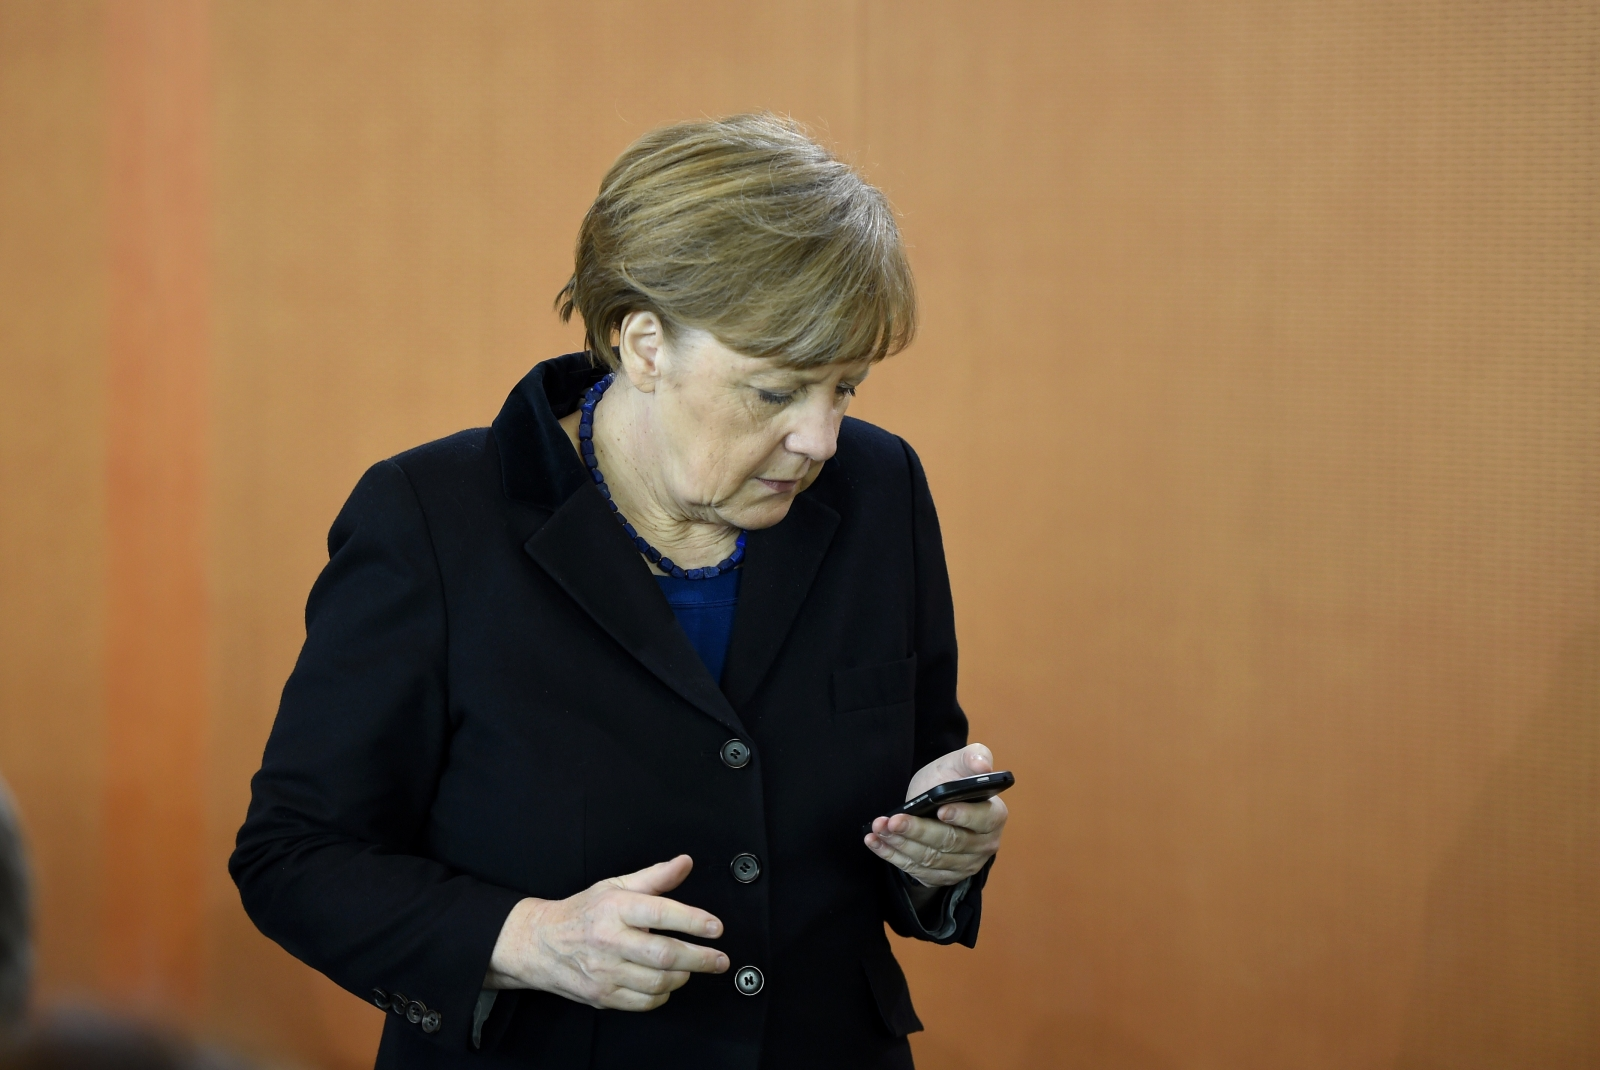 Angela Merkel looking at her phone